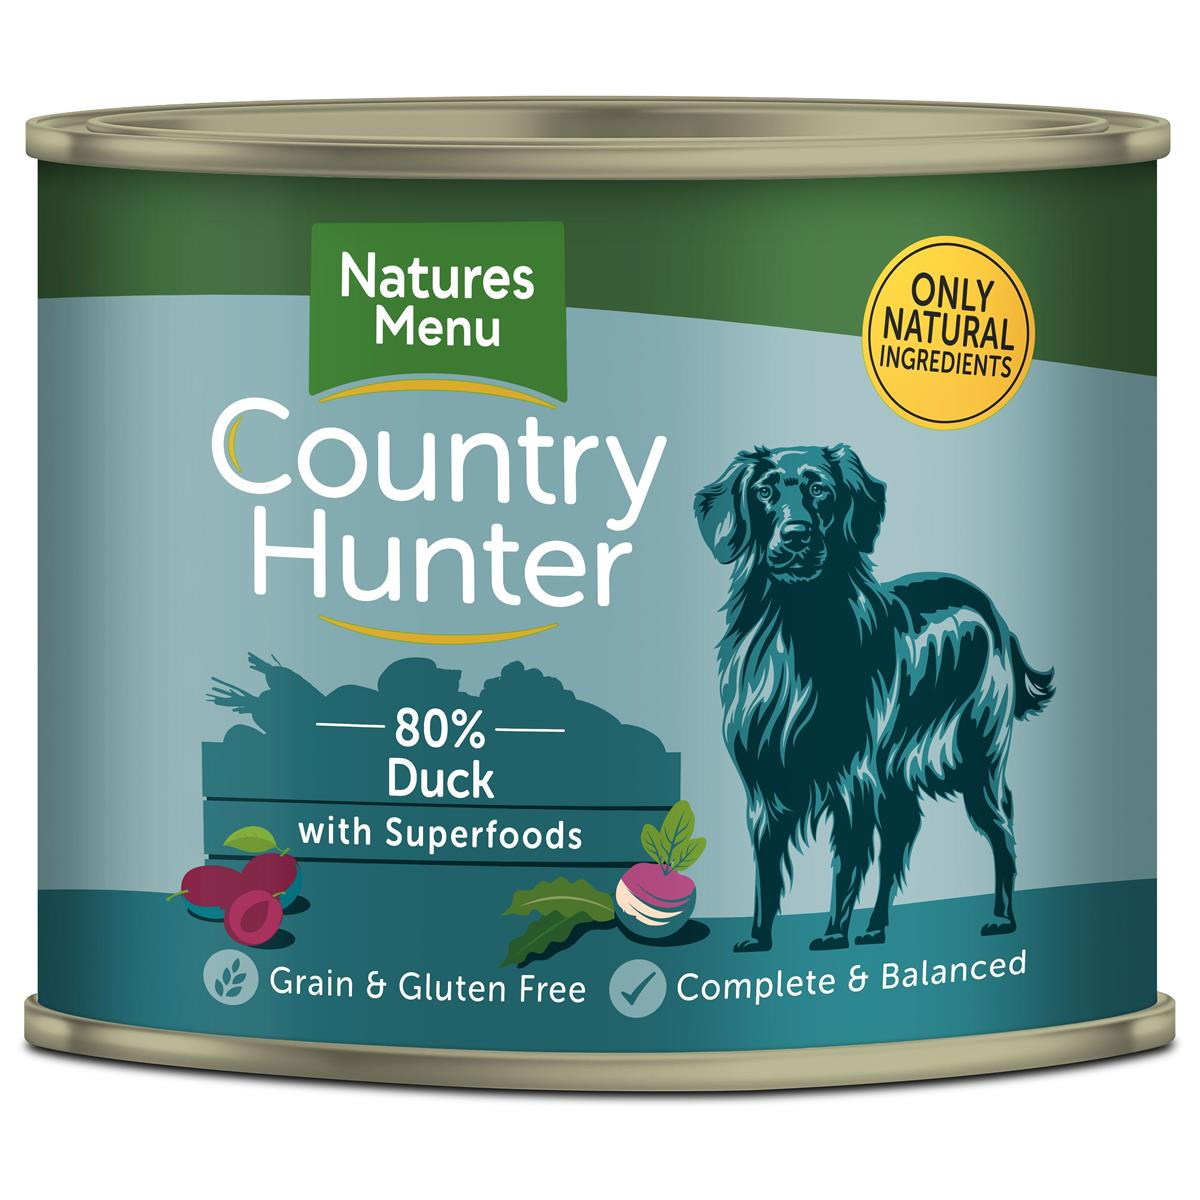 NM Boksemat Hund Country Hunter 80% And & Plomme 600g (6stk) Petrol